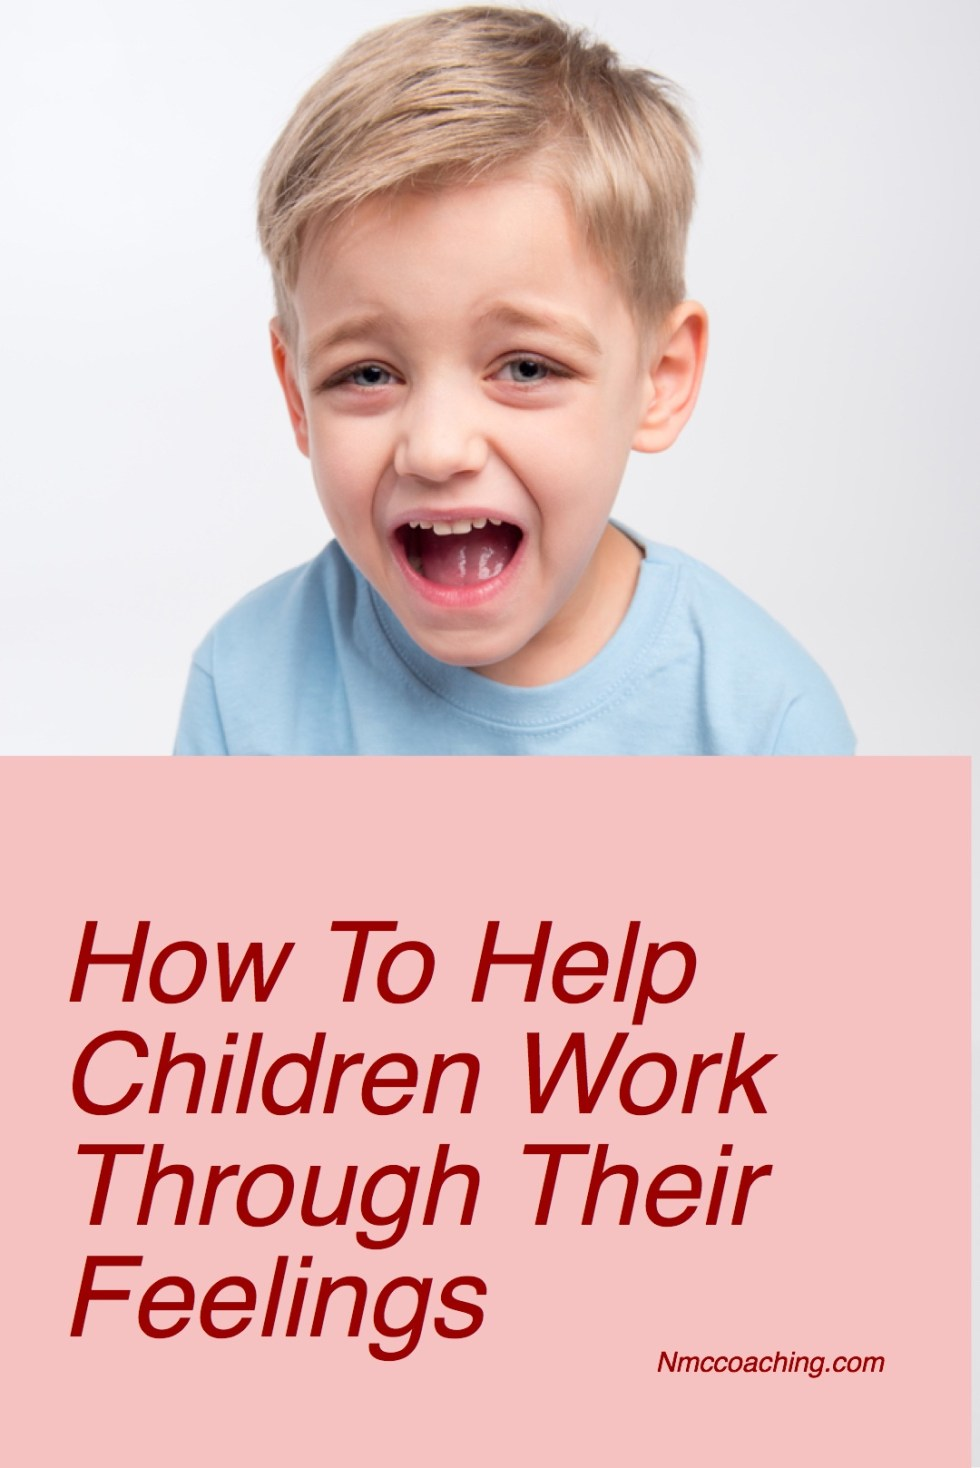 How to help children work through their feelings